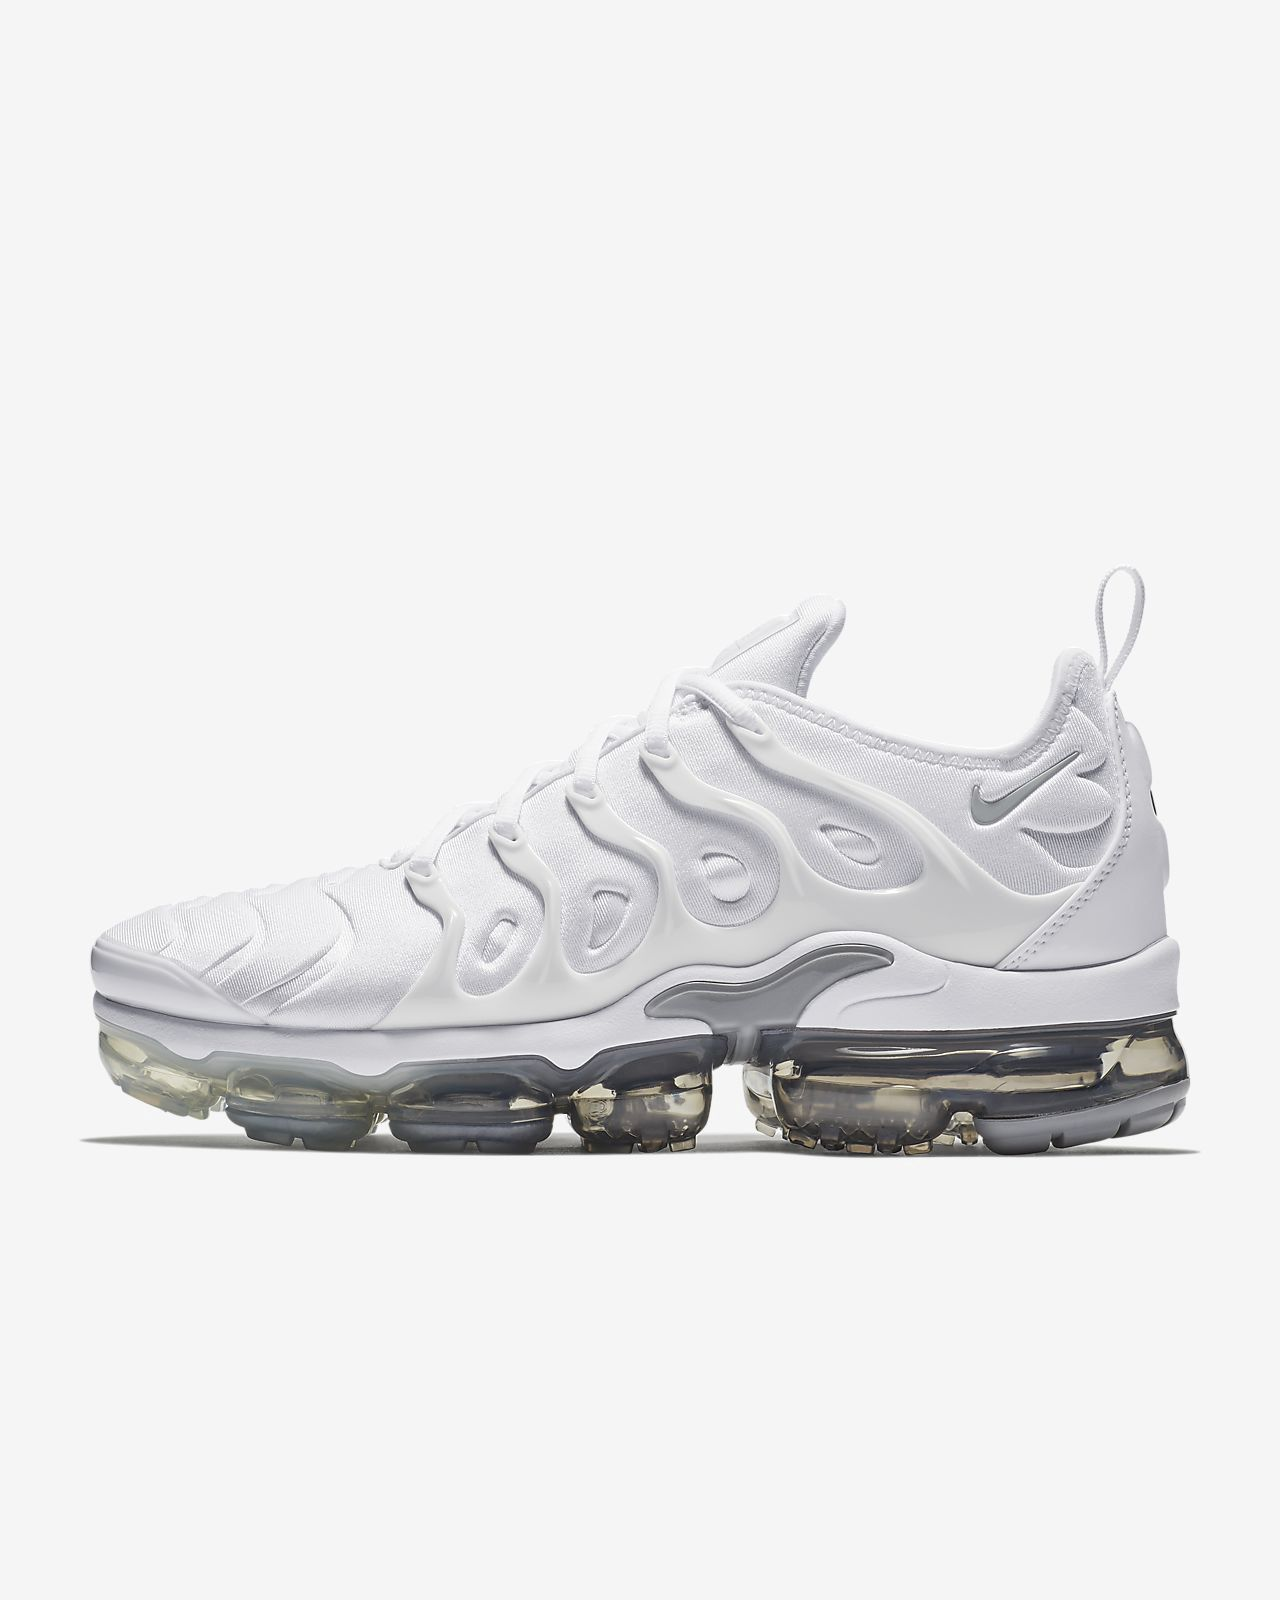 9f2efb4e5b07f Nike Air Vapormax Plus Men s Shoe - 10.5 Platinum